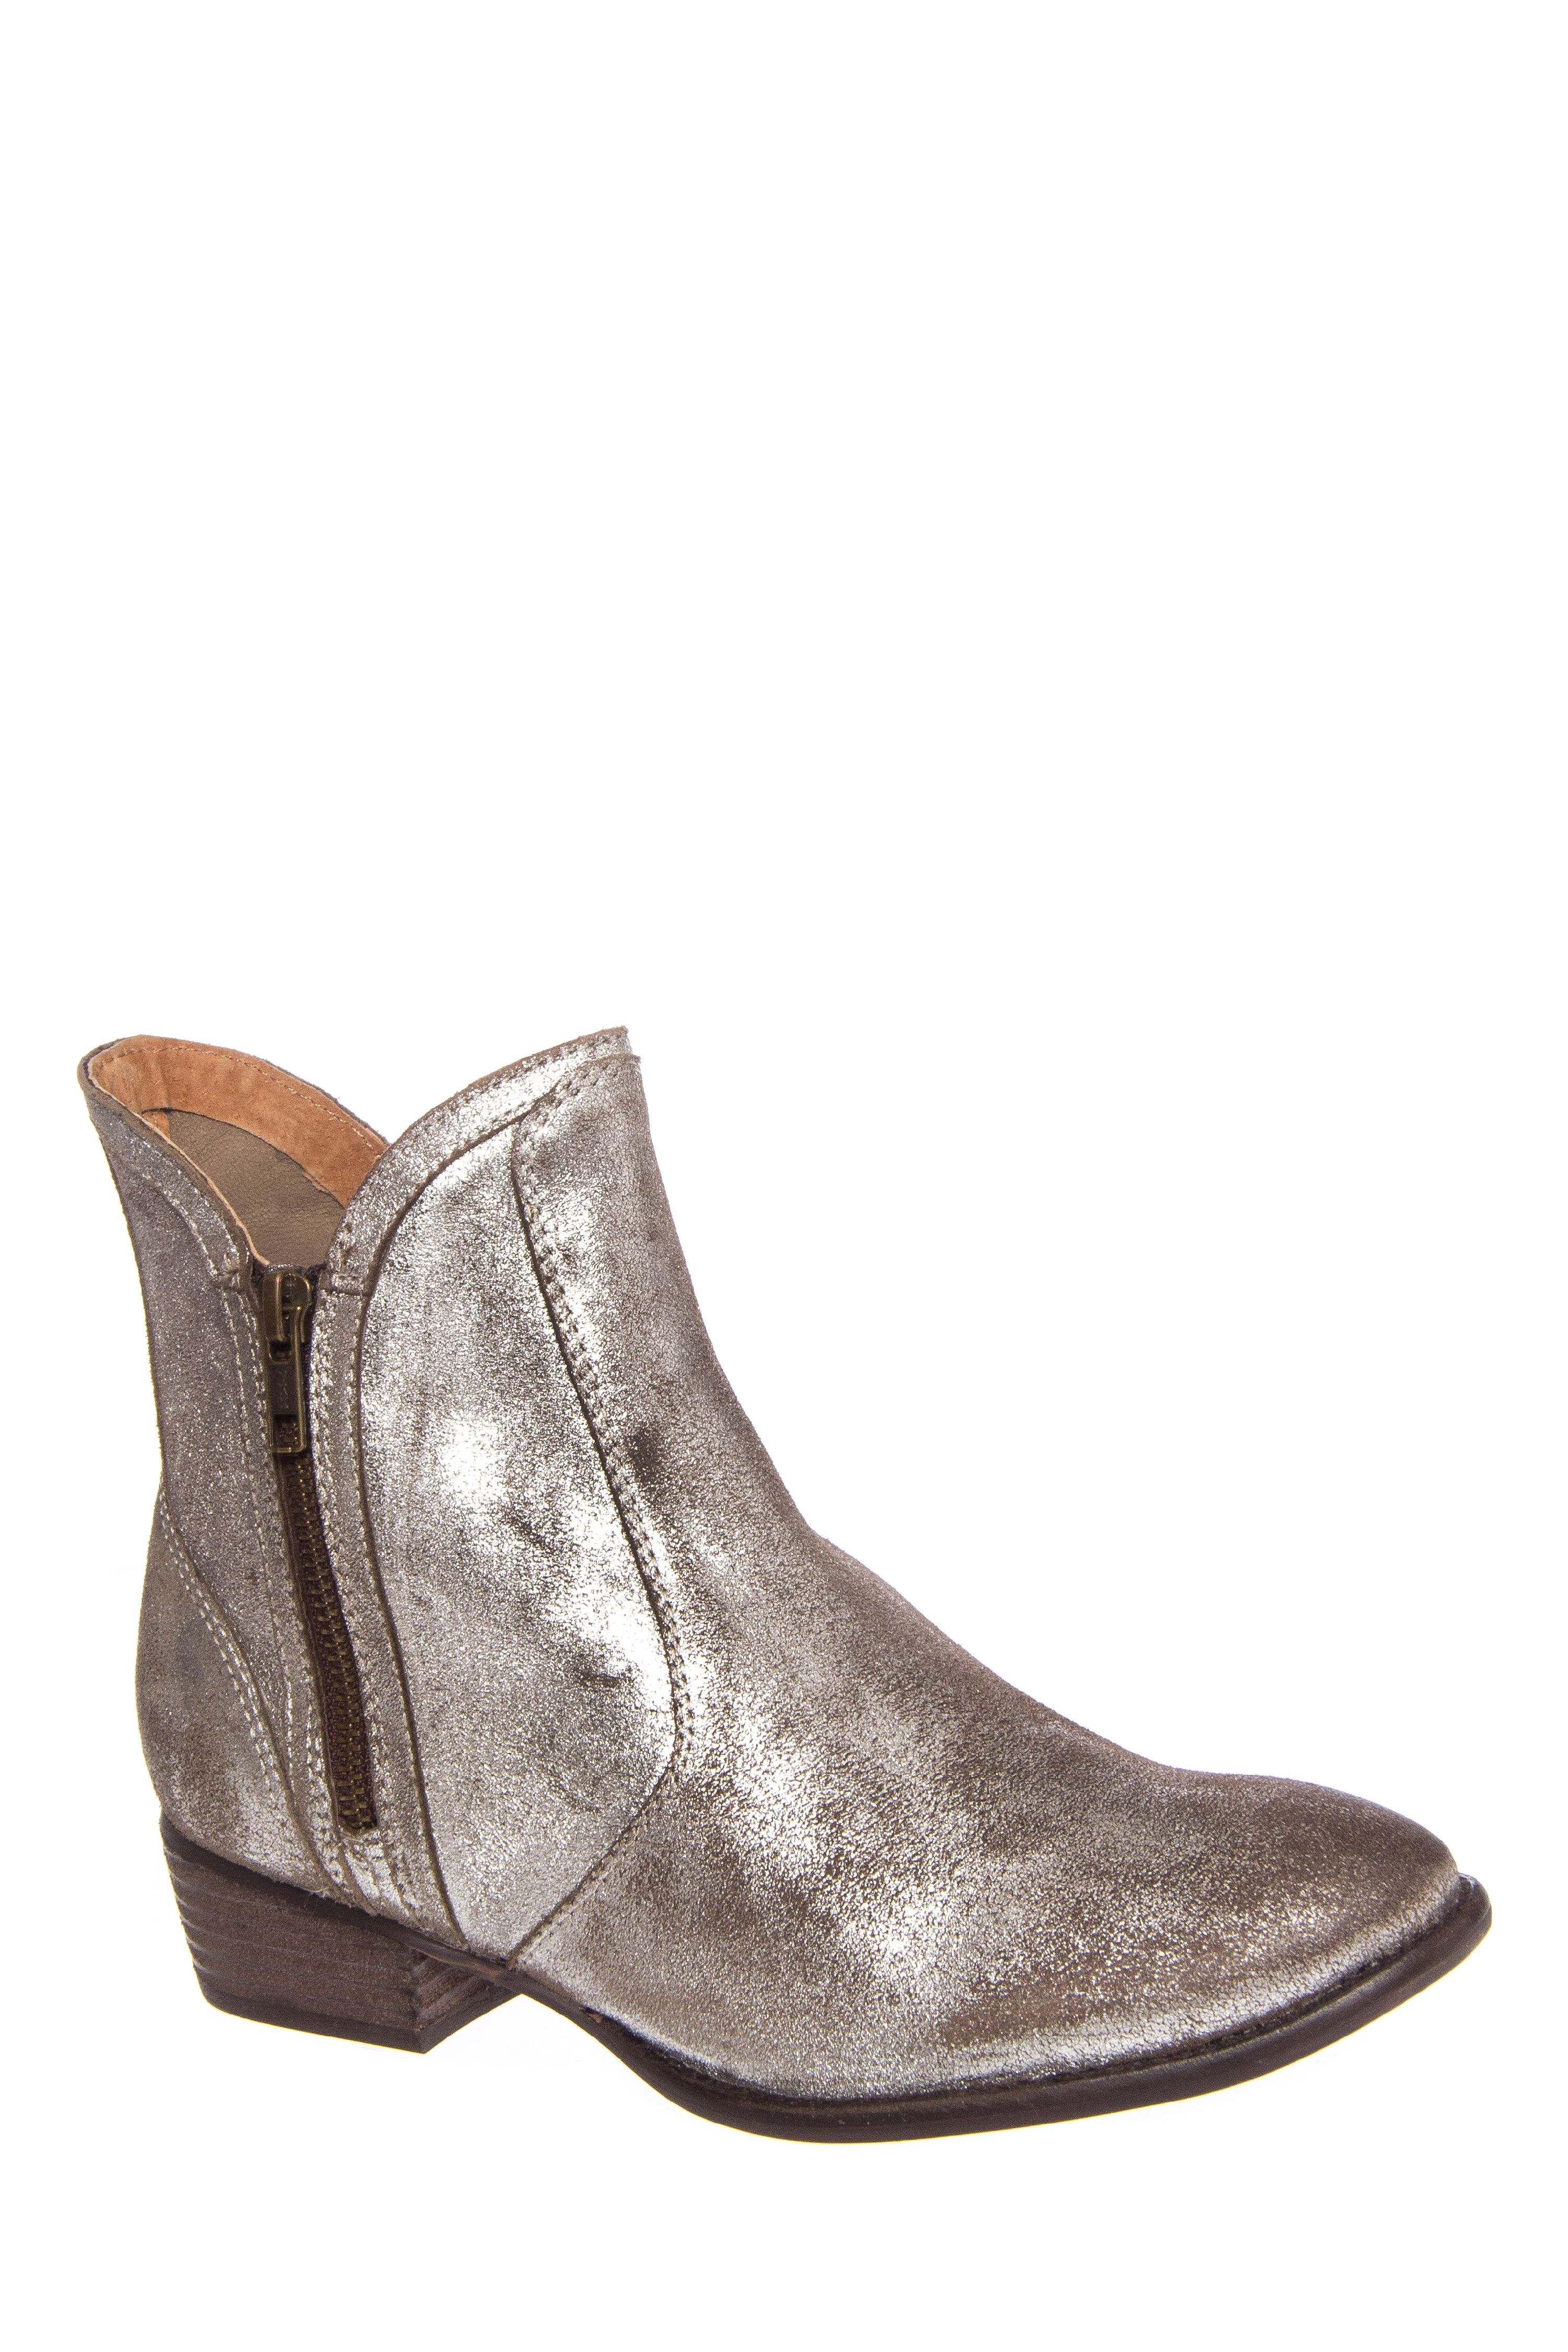 Seychelles Lucky Penny Low Heel Boot - Pewter